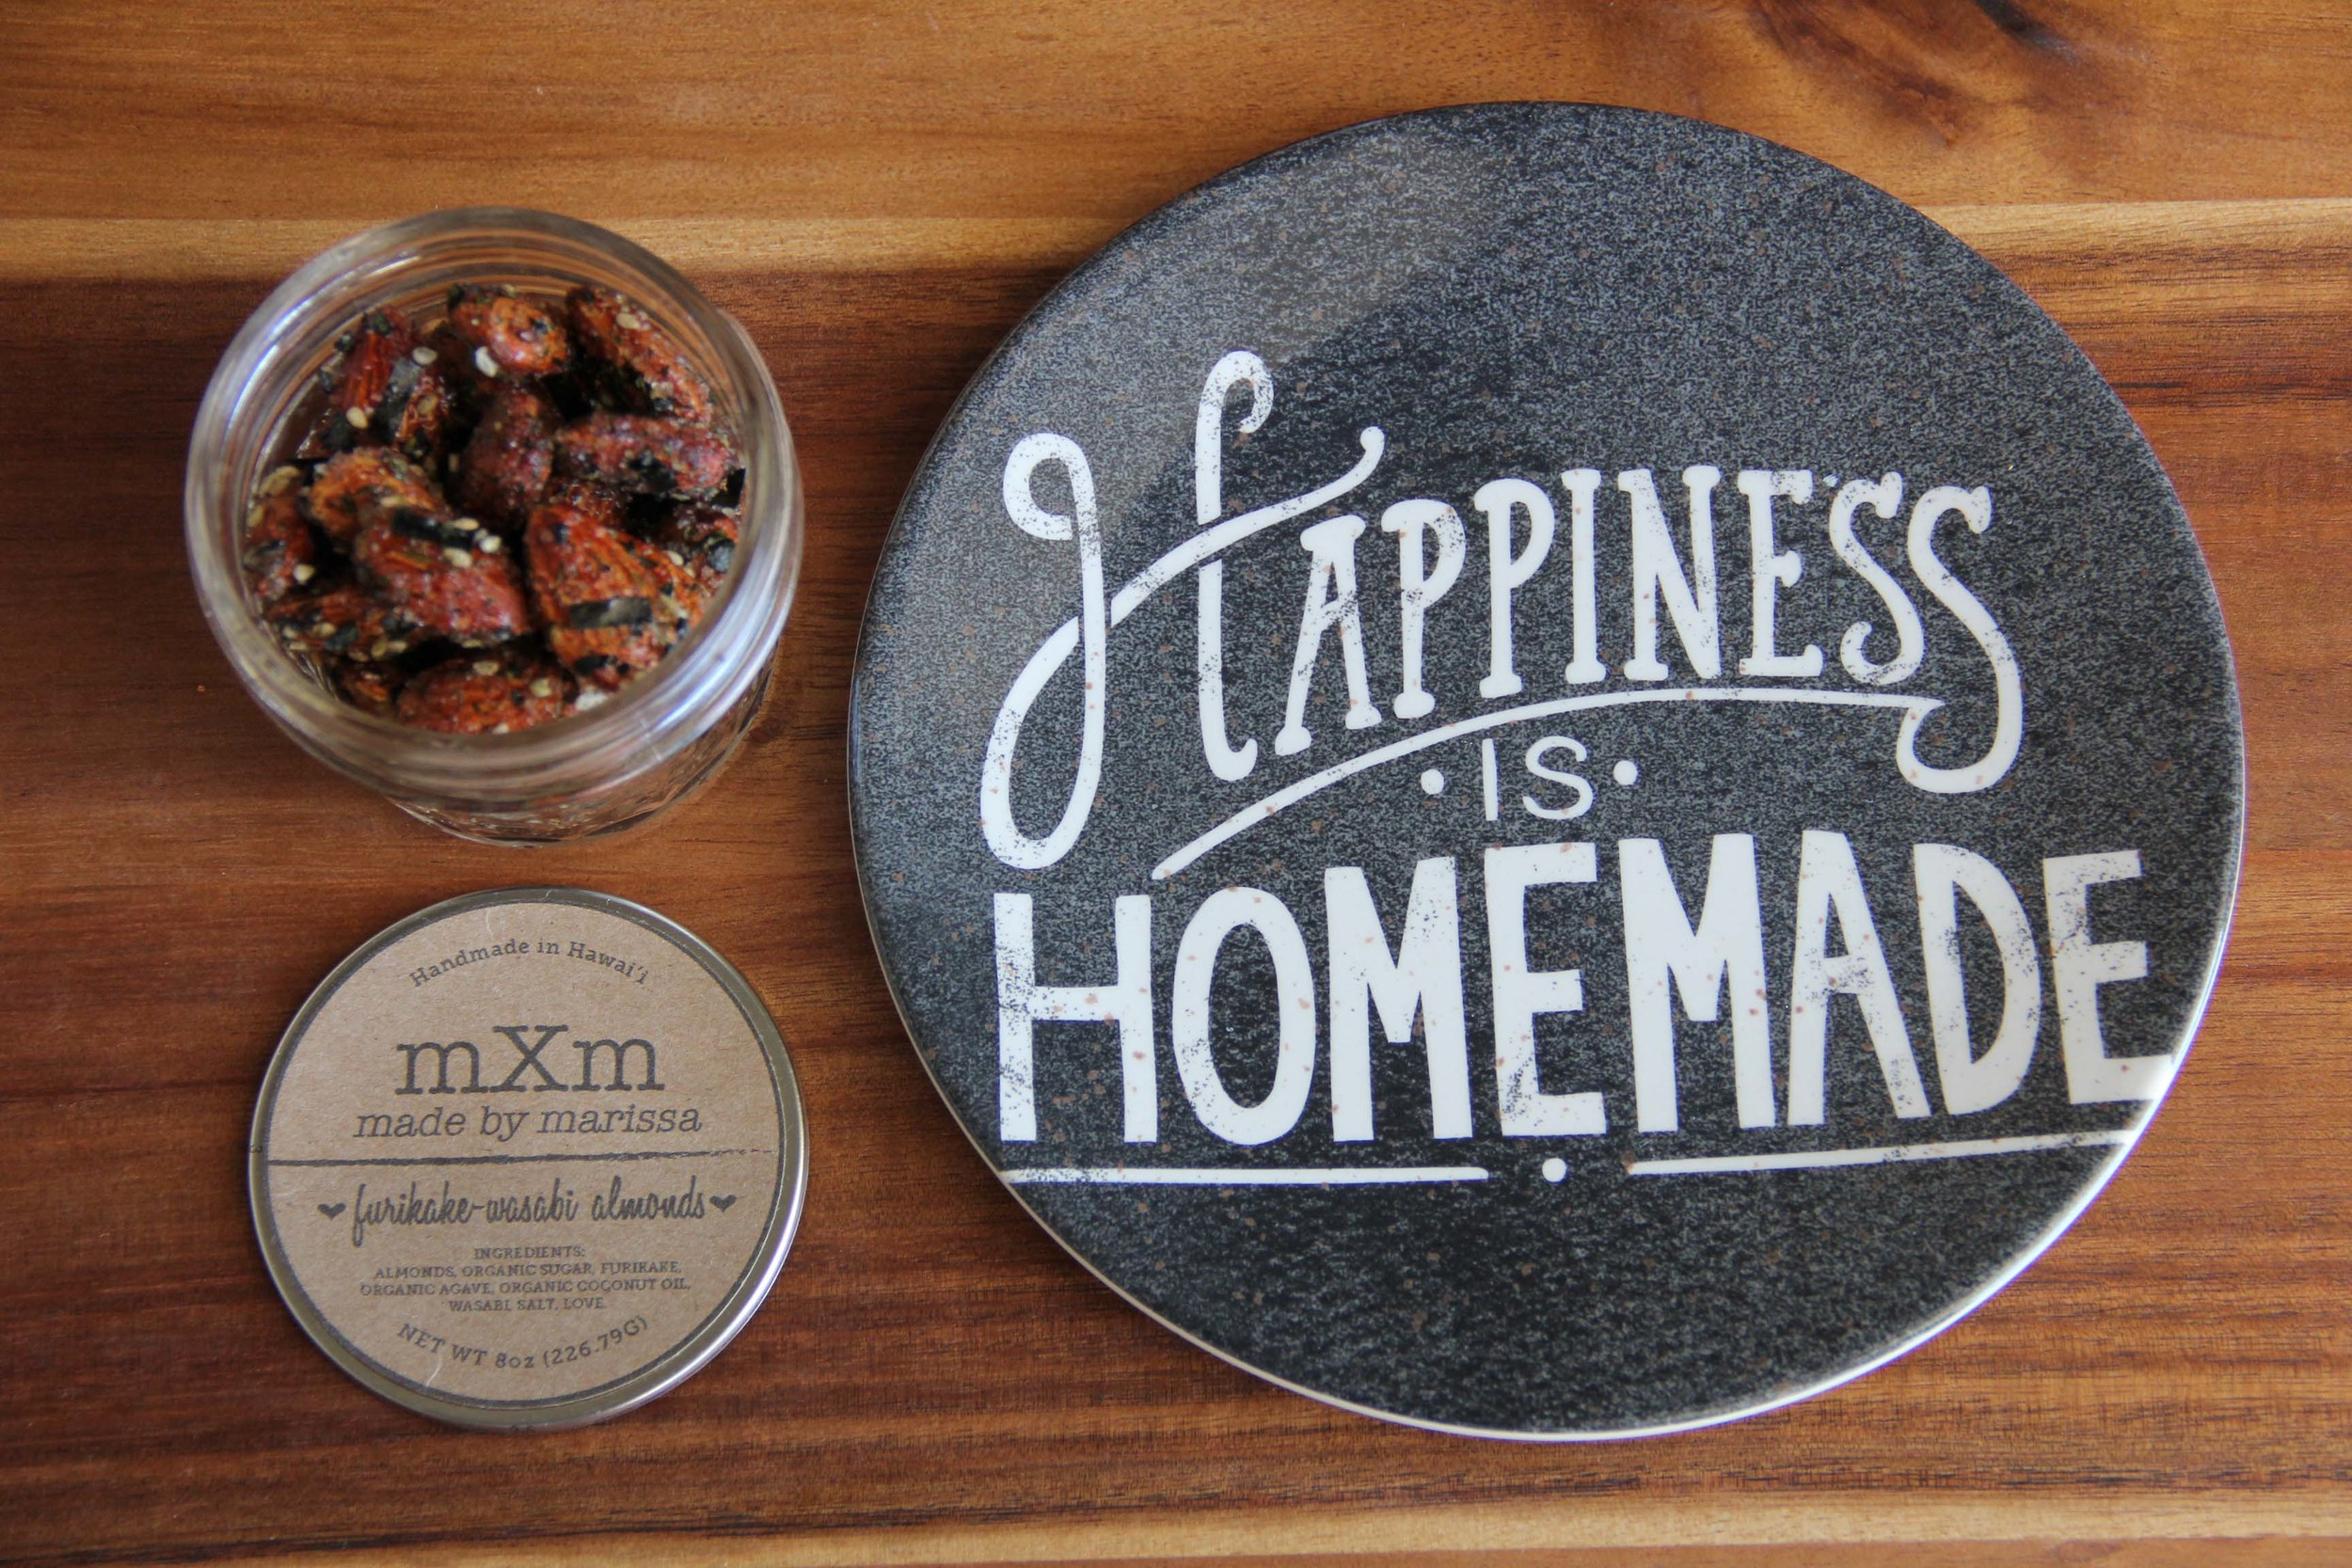 Made By Marissa > Handmade in Hawaii > Product > Furikake Wasabi Almonds > Product 1.jpg